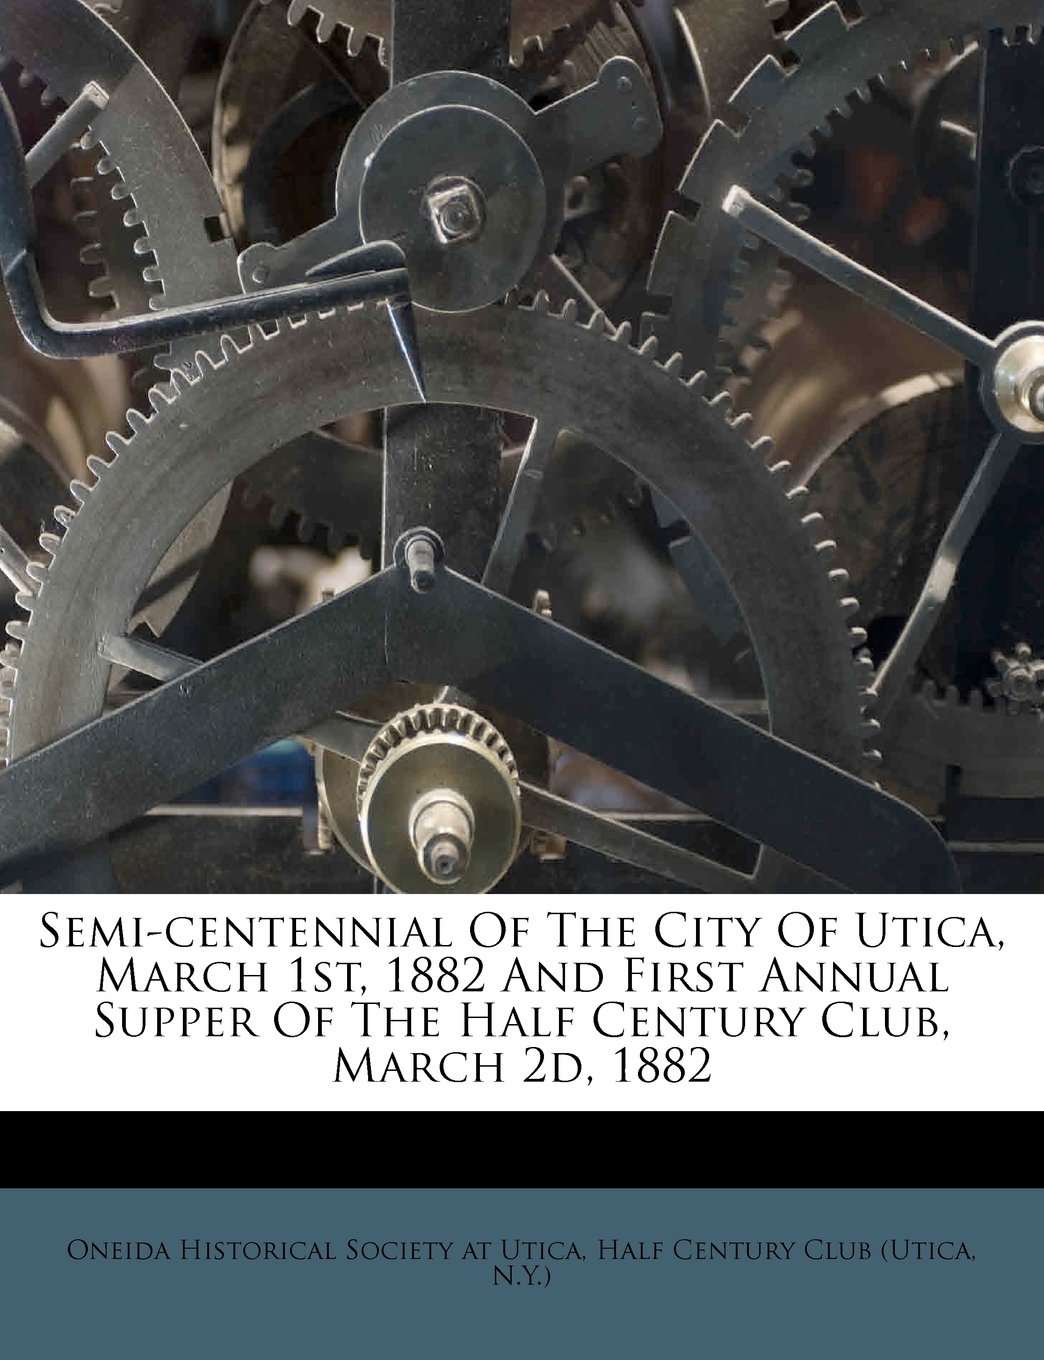 Read Online Semi-centennial Of The City Of Utica, March 1st, 1882 And First Annual Supper Of The Half Century Club, March 2d, 1882 ebook